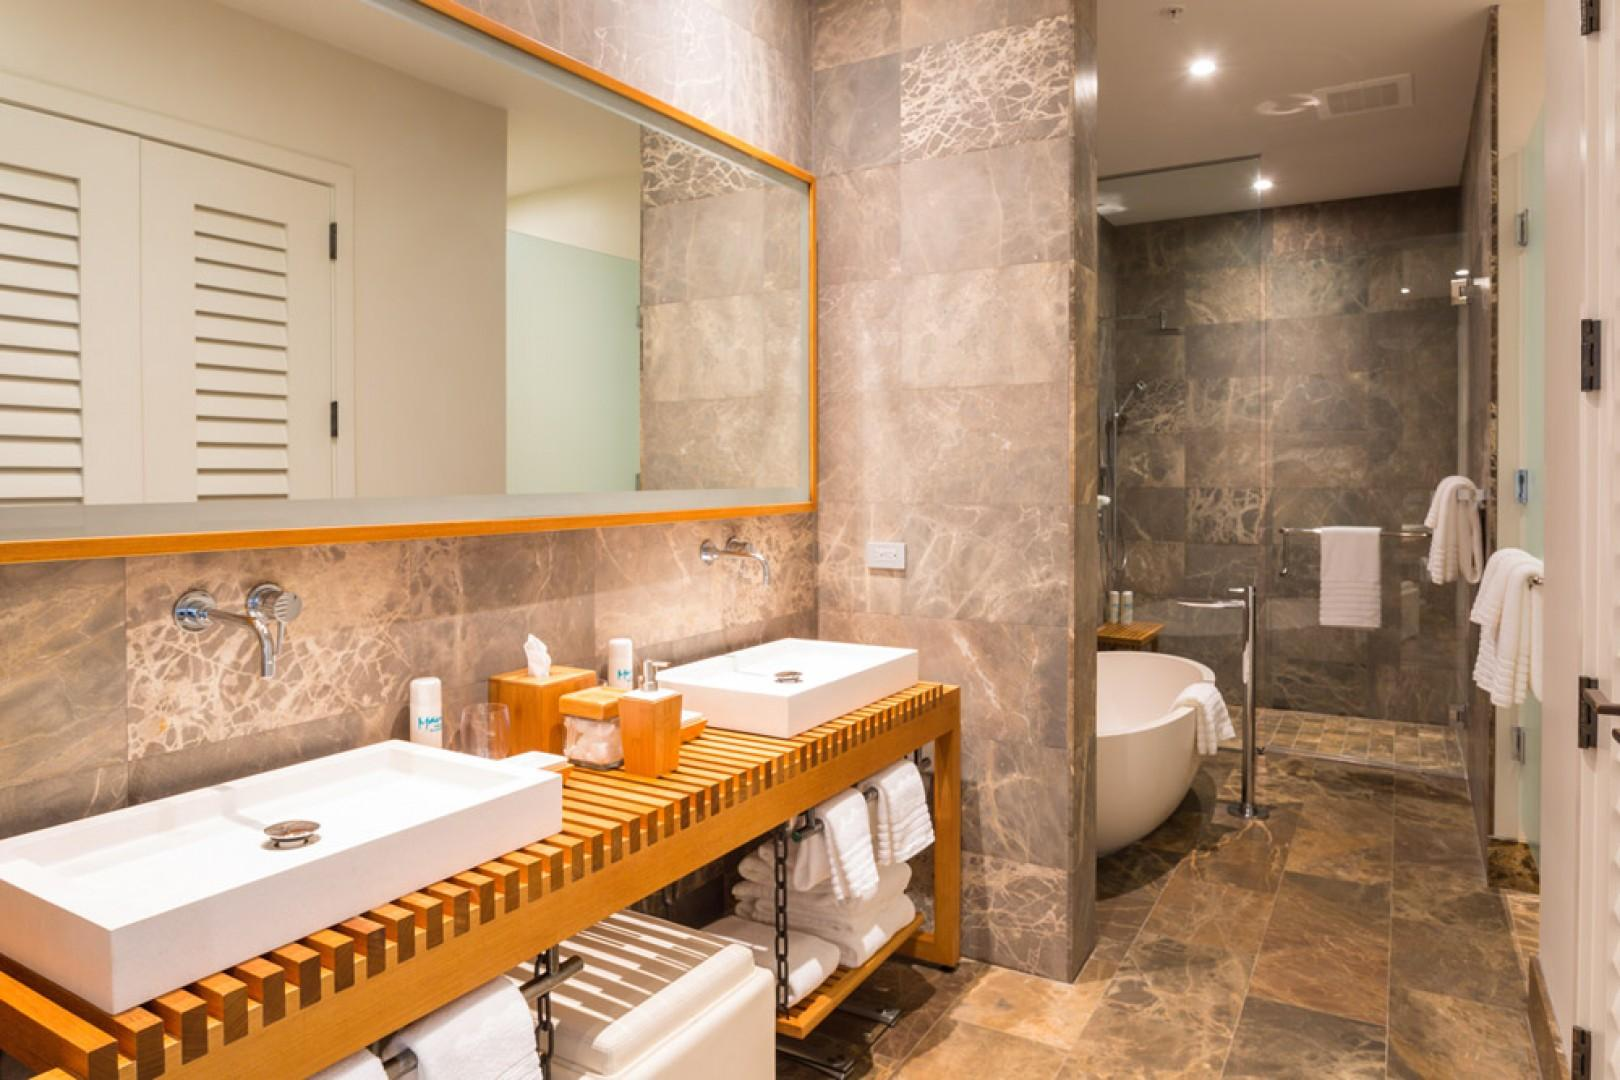 SeaGlass Villa 810 at Andaz Maui Wailea Resort - King Master Bedroom Bathroom with Dual Vanity, Enclosed Shower, Private WC and Free-Standing Deep Soak Tub